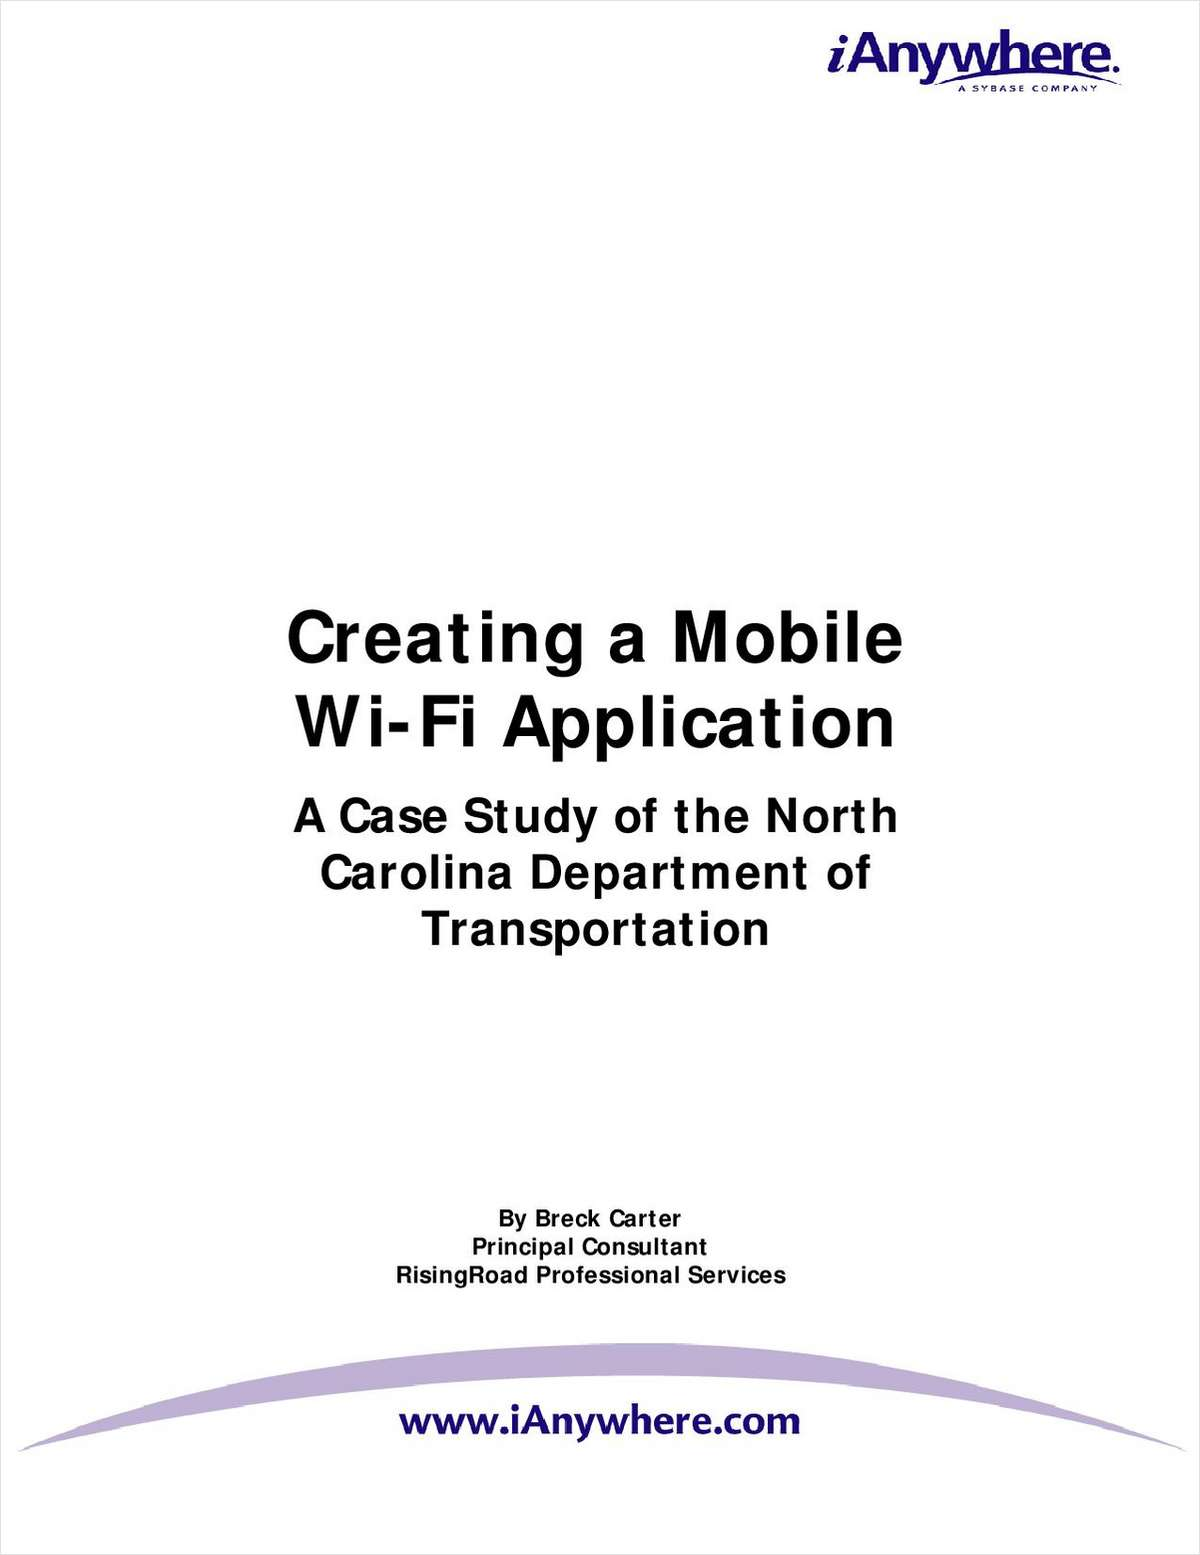 Developing A Mobile Wi Fi Application   Case Study Of The NCDOT, Free  IAnywhere White Paper